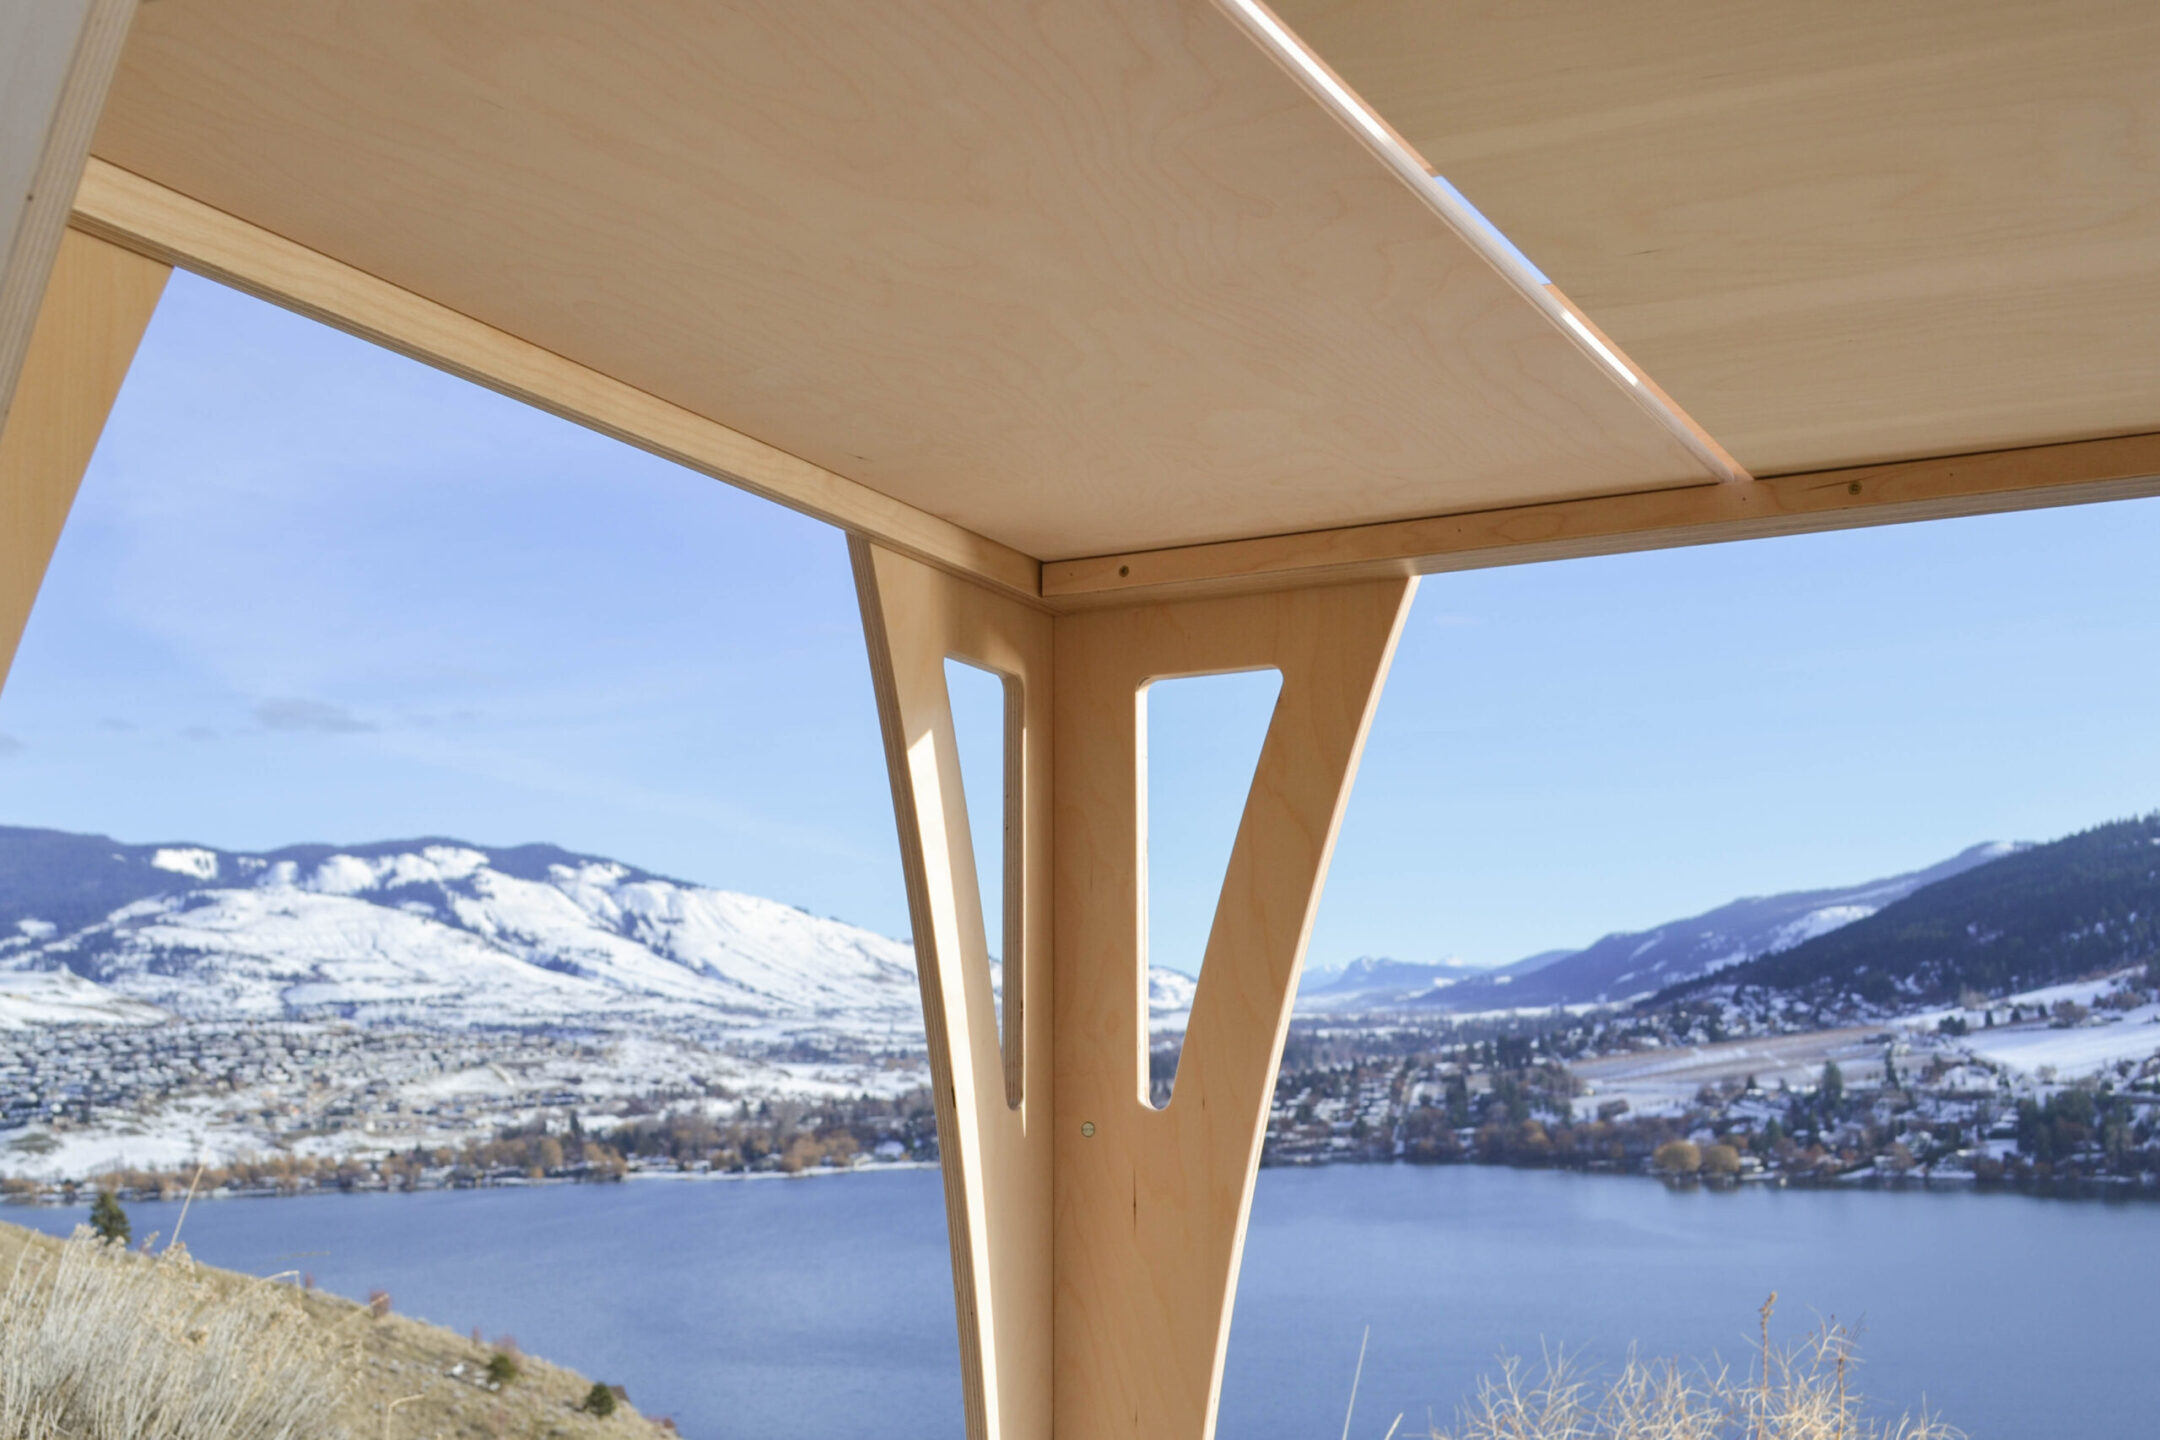 2021 bunk bed made out of 100% Birch multiply photographed with a beautiful view of the Okanagan valley